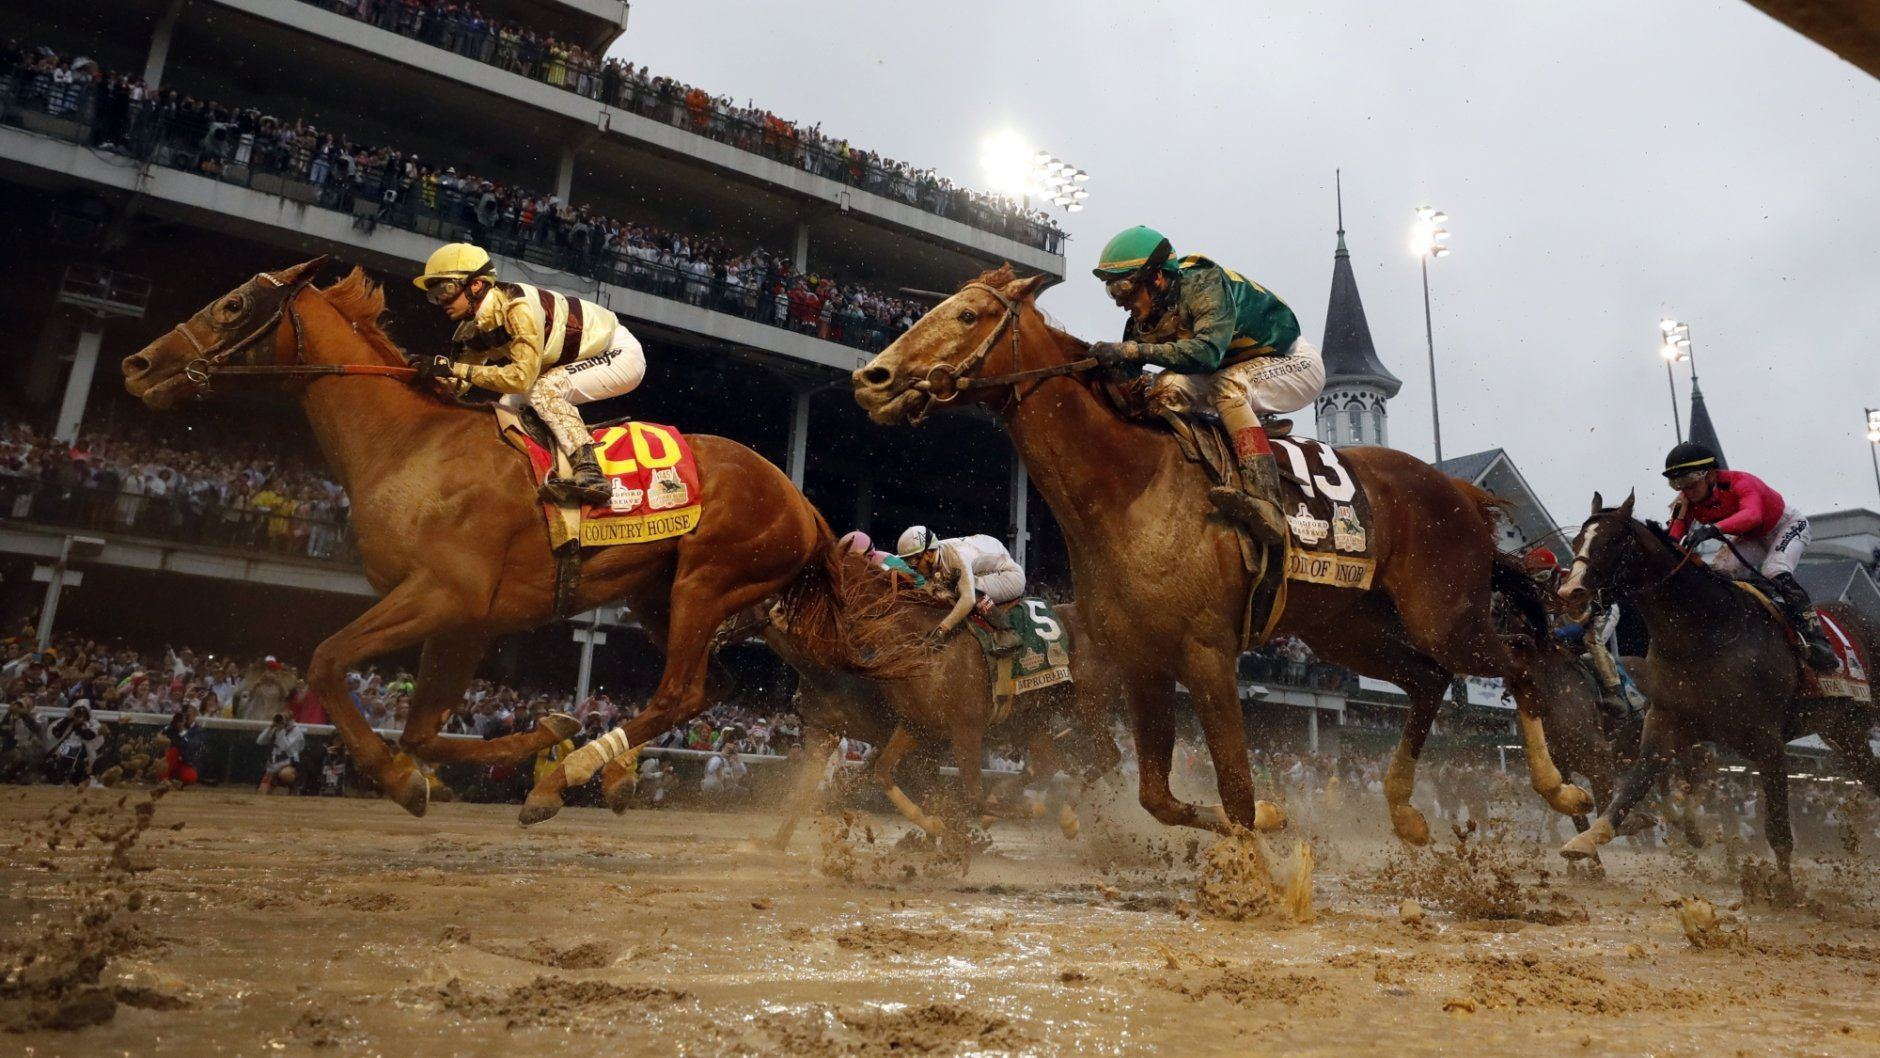 Flavien Prat rides Country House to victory during the 145th running of the Kentucky Derby horse race at Churchill Downs Saturday, May 4, 2019, in Louisville, Ky. Luis Saez on Maximum Security finished first but was disqualified. (AP Photo/Matt Slocum)